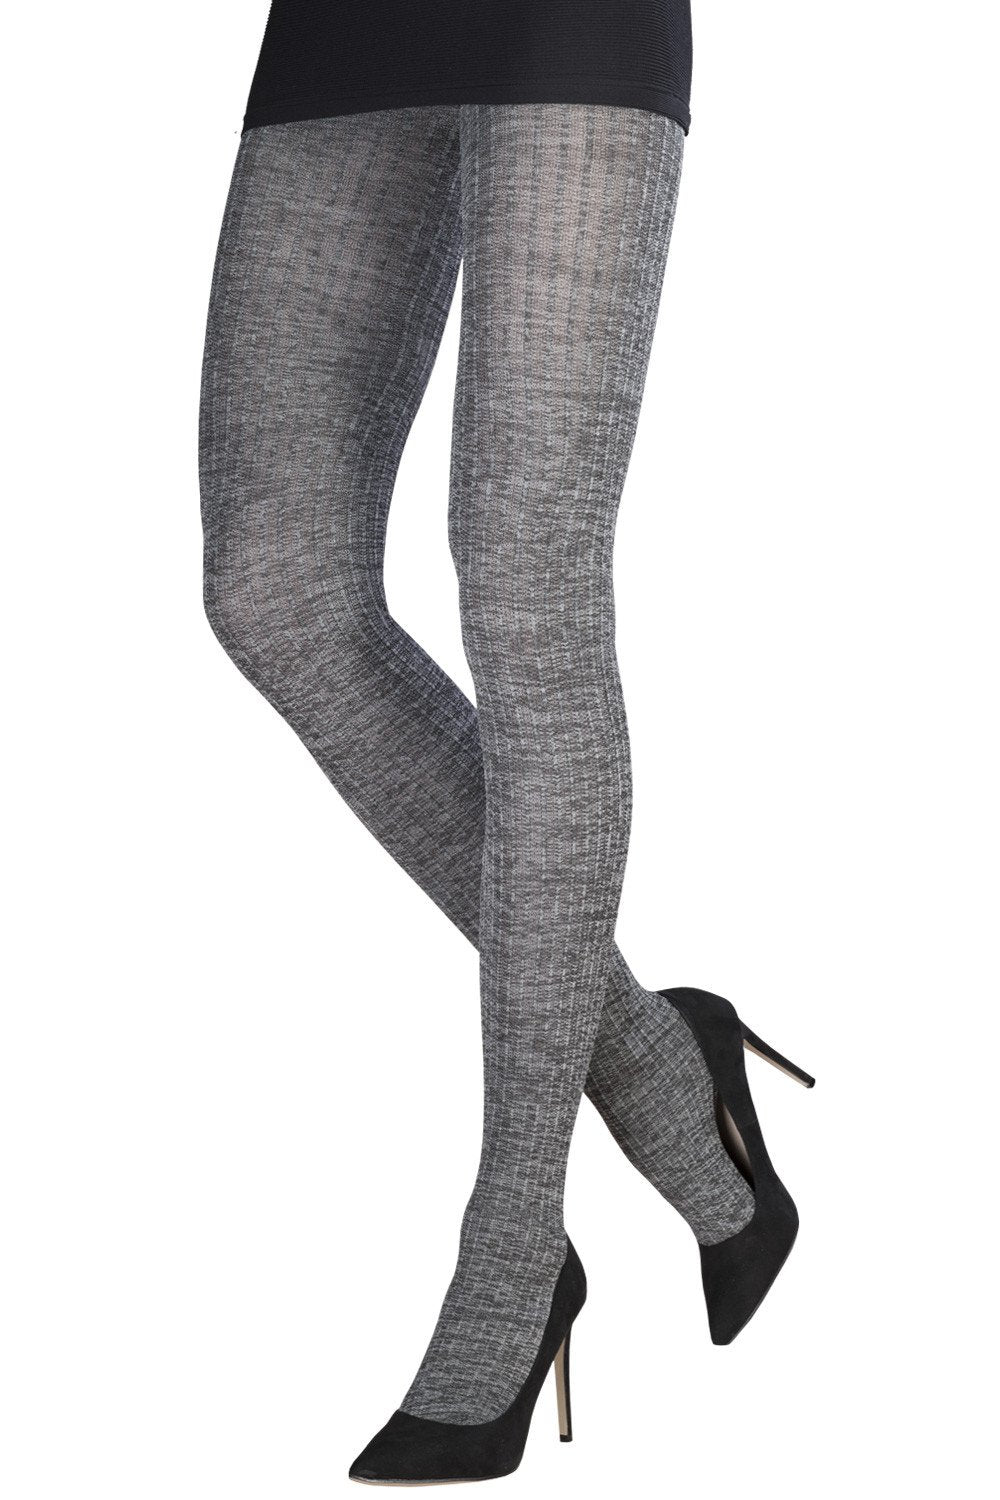 Heathered Vertical Stripes In Relief Tights